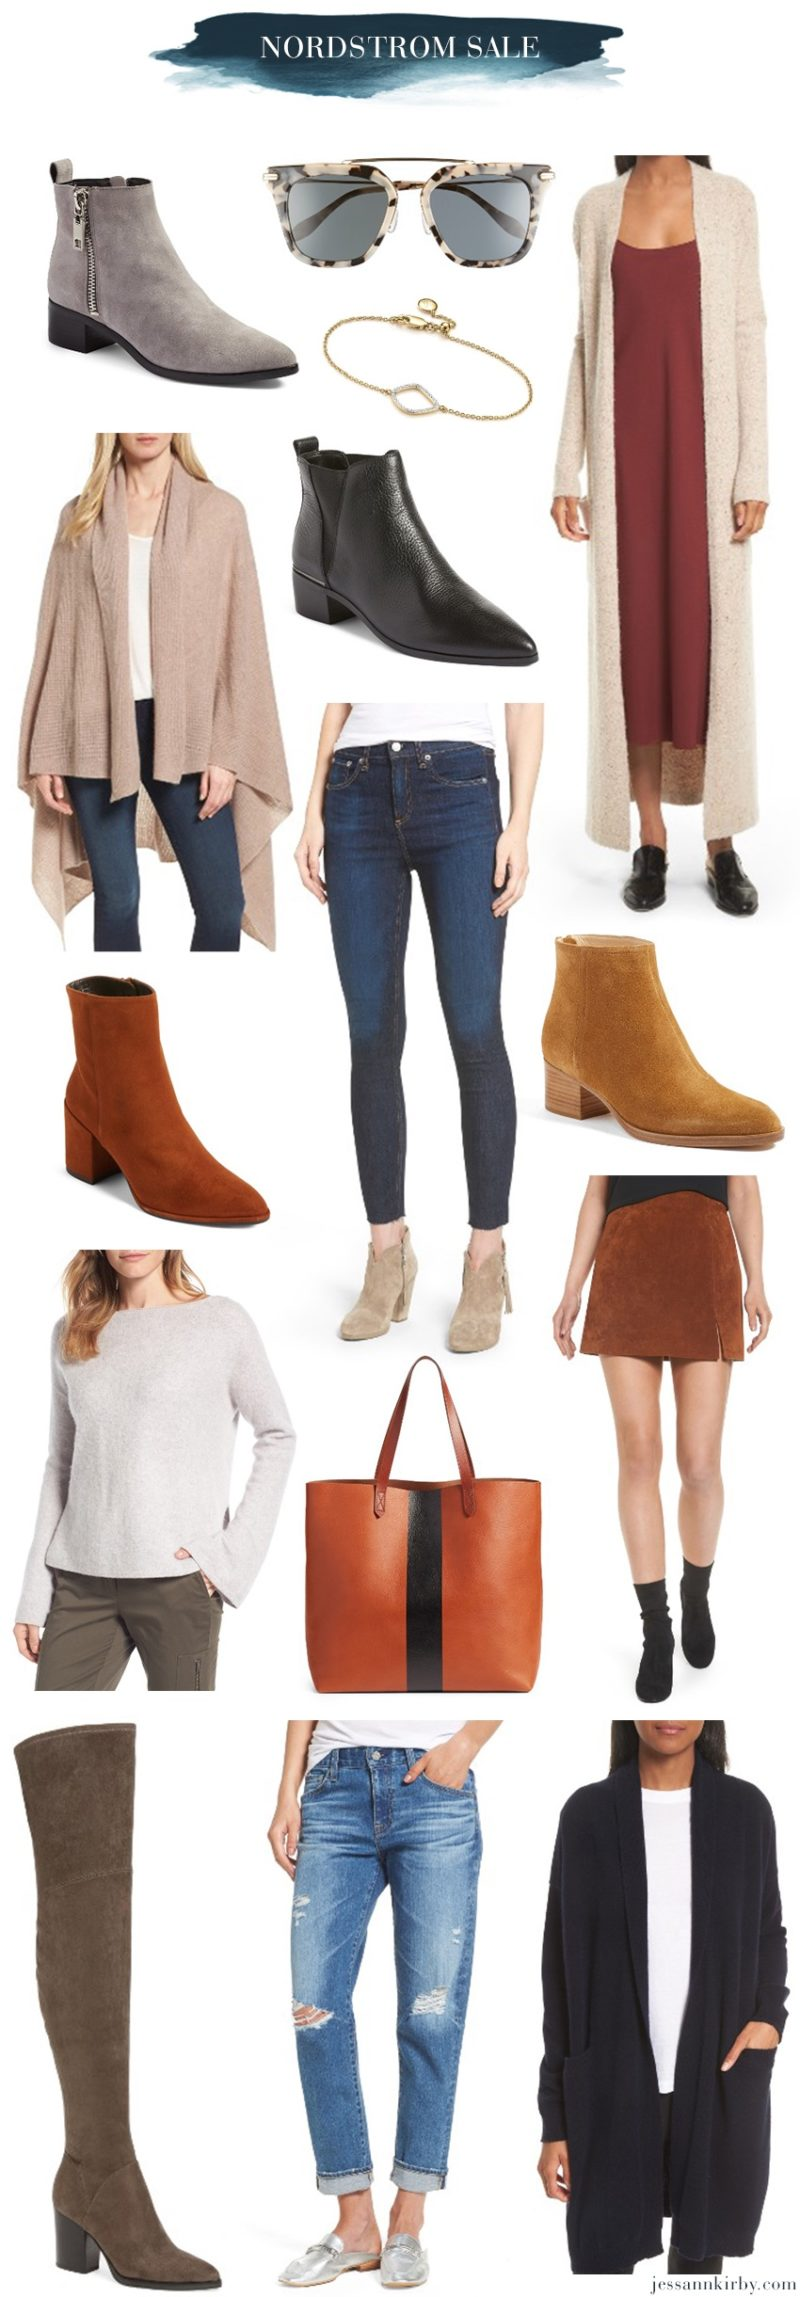 15 Top Picks from Nordstrom Anniversary Sale Early Access